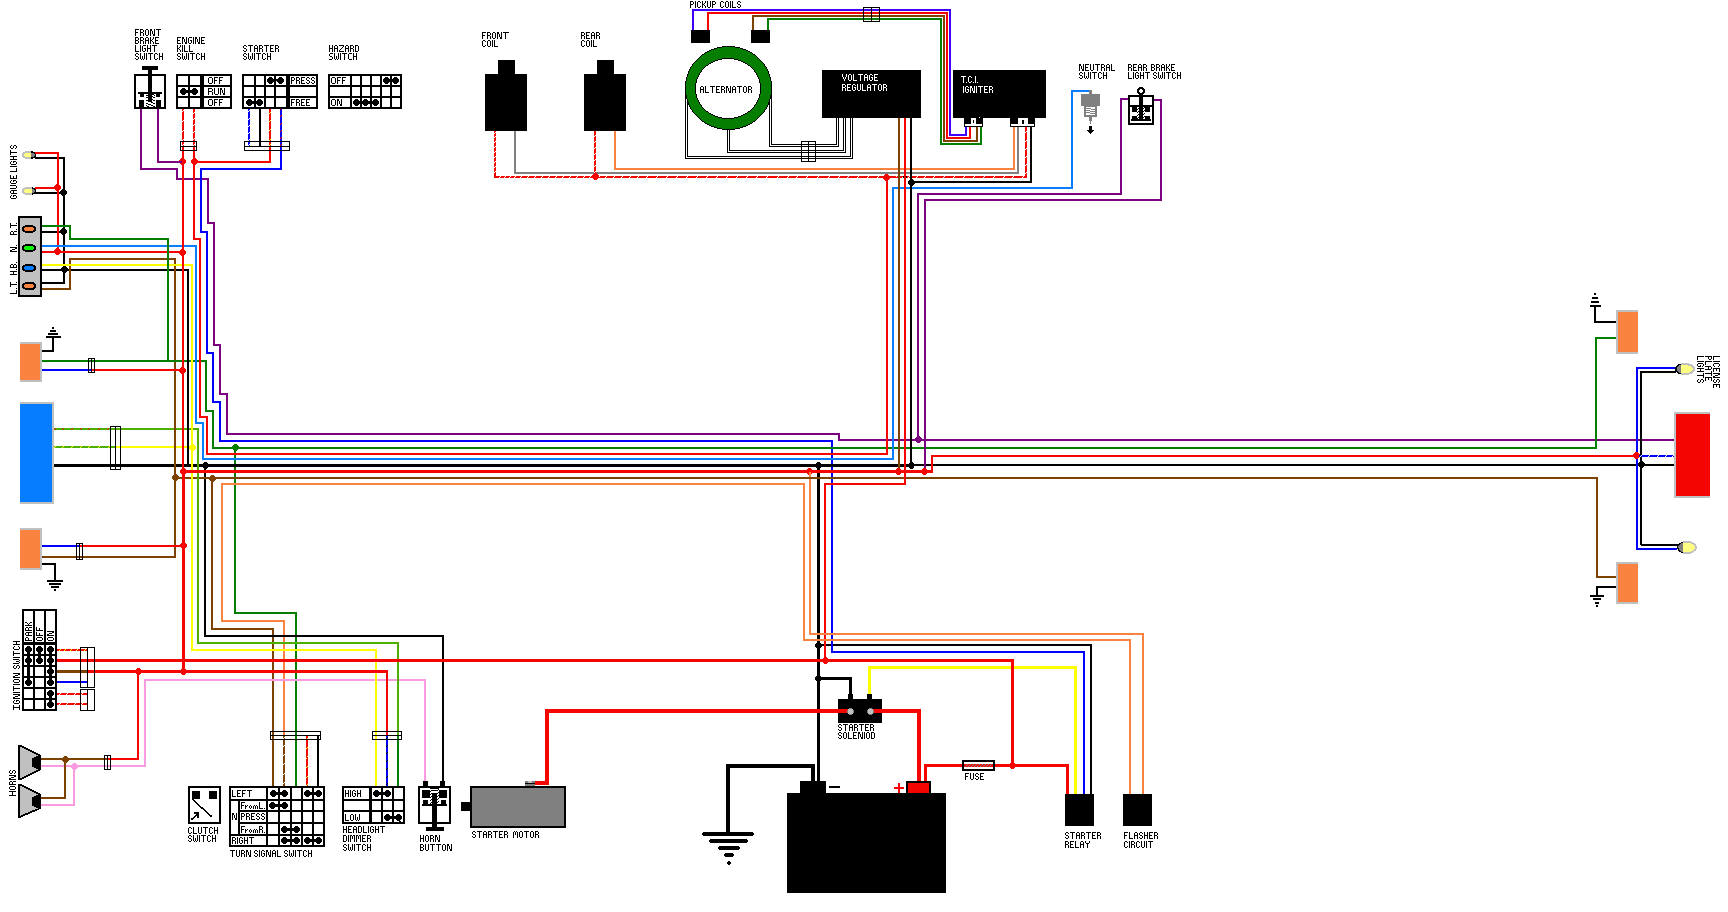 Trail Wagon Tw200 Wiring Diagram